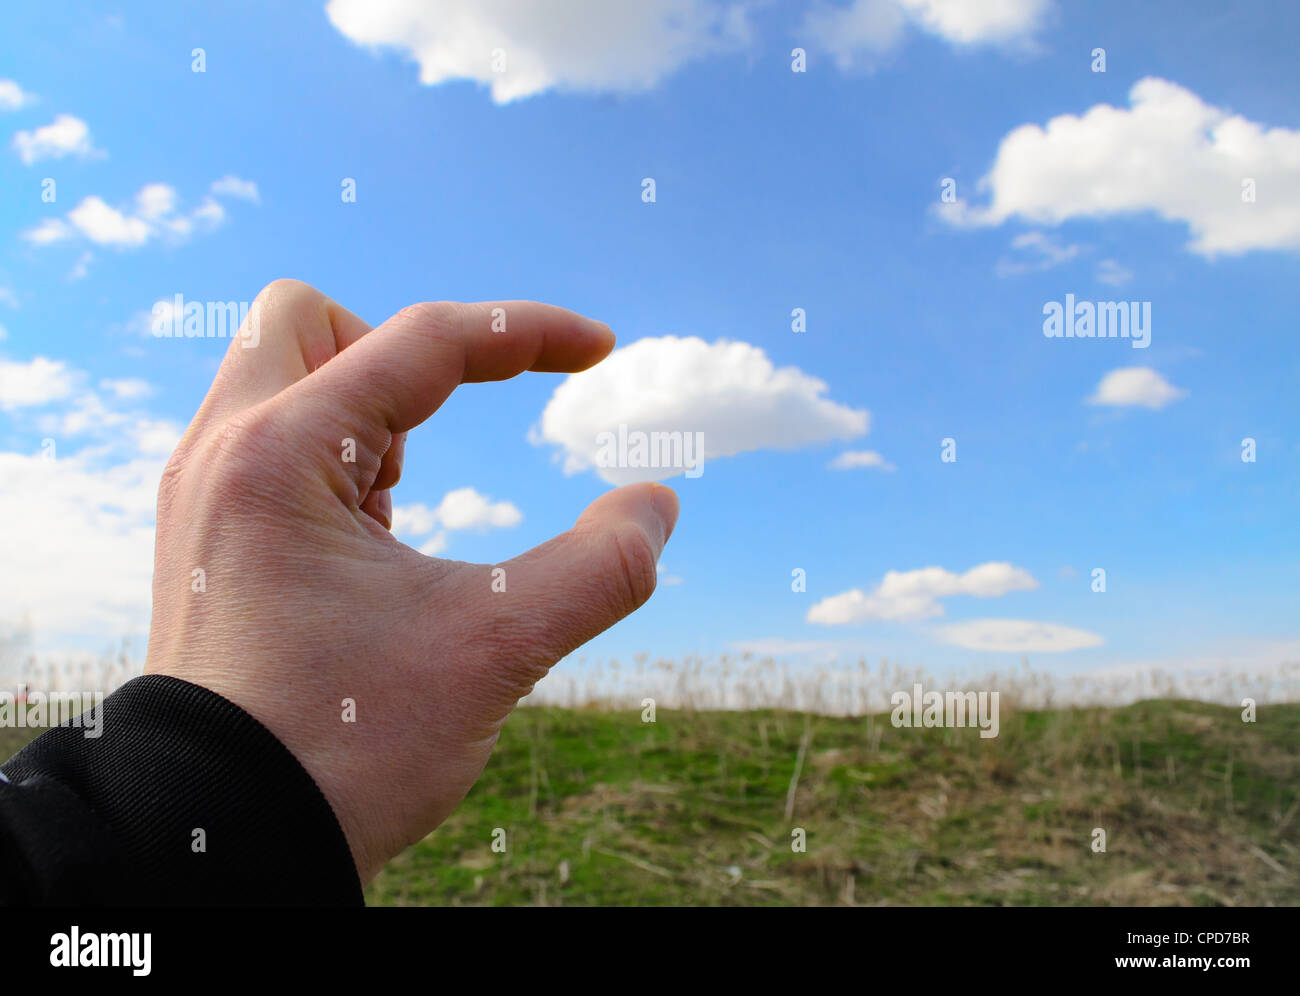 Human hand reaching for a cloud and grabing it Stock Photo